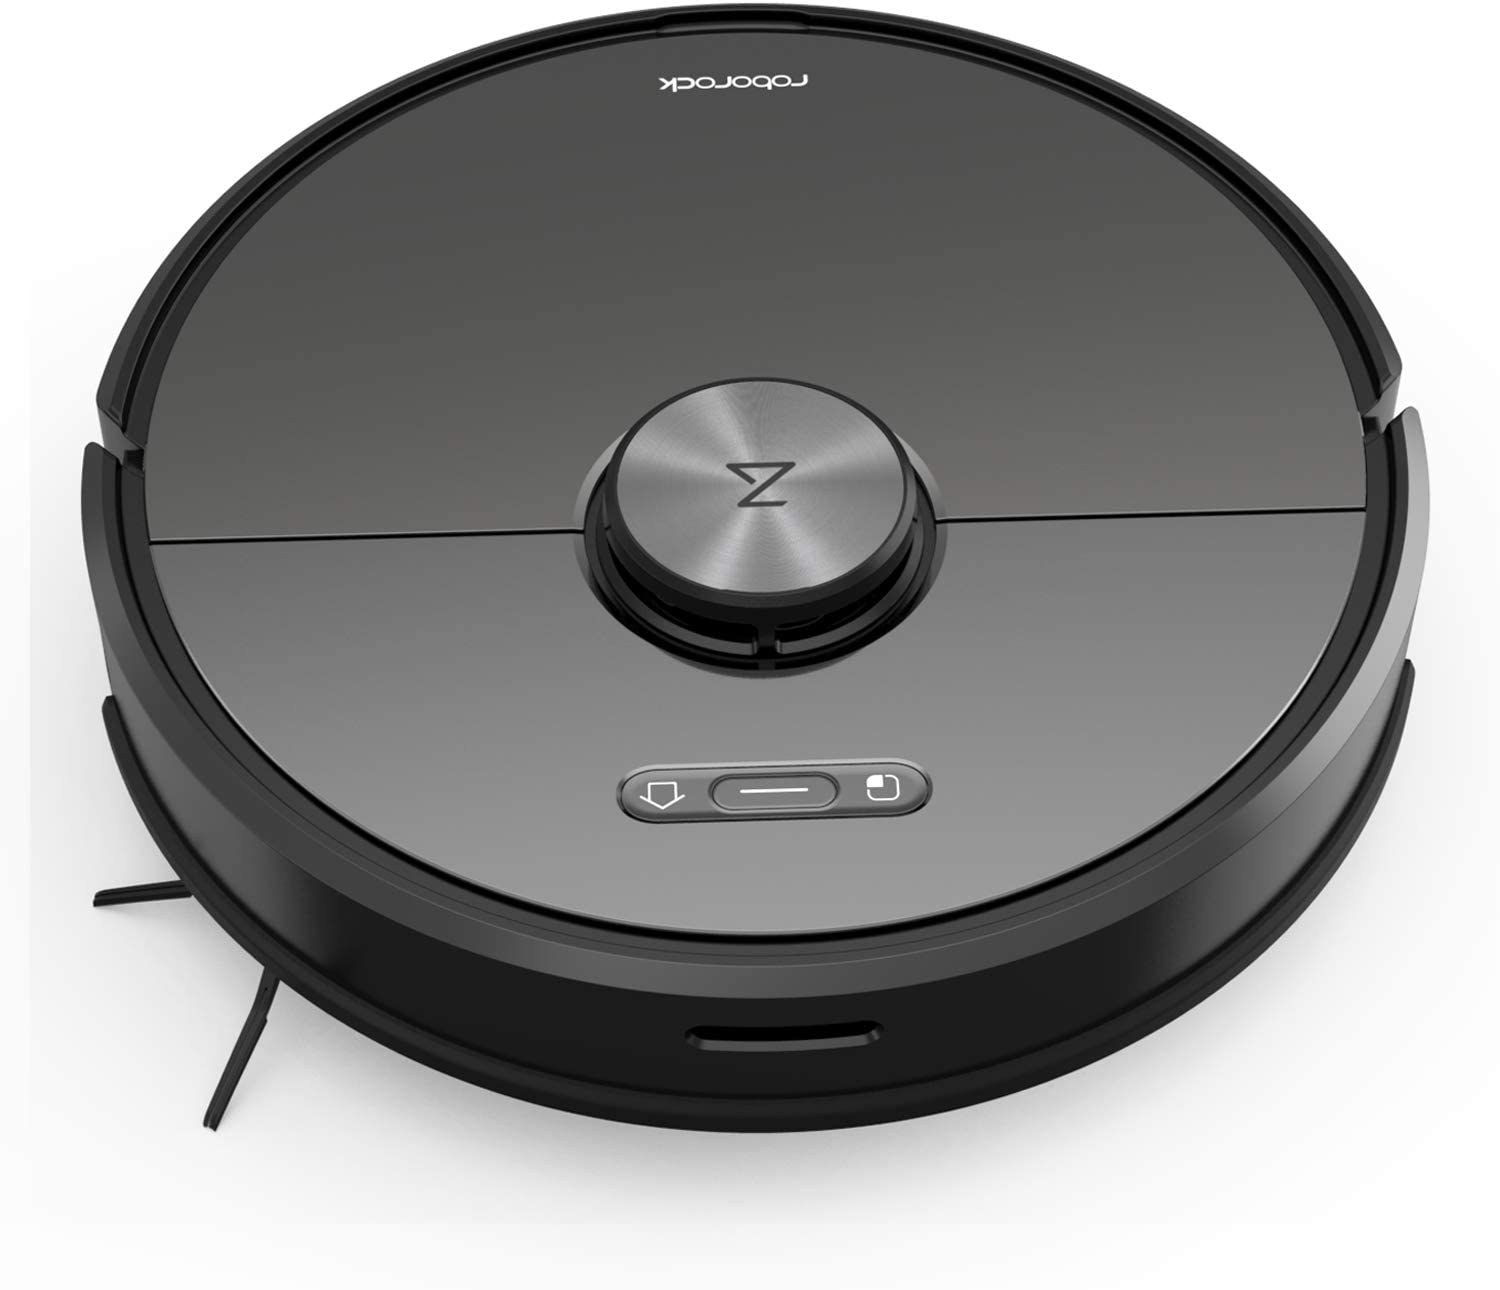 Roborock Robot Vacuum Robotic Cleaner San Antonio Mall Works Mop Don't miss the campaign with and